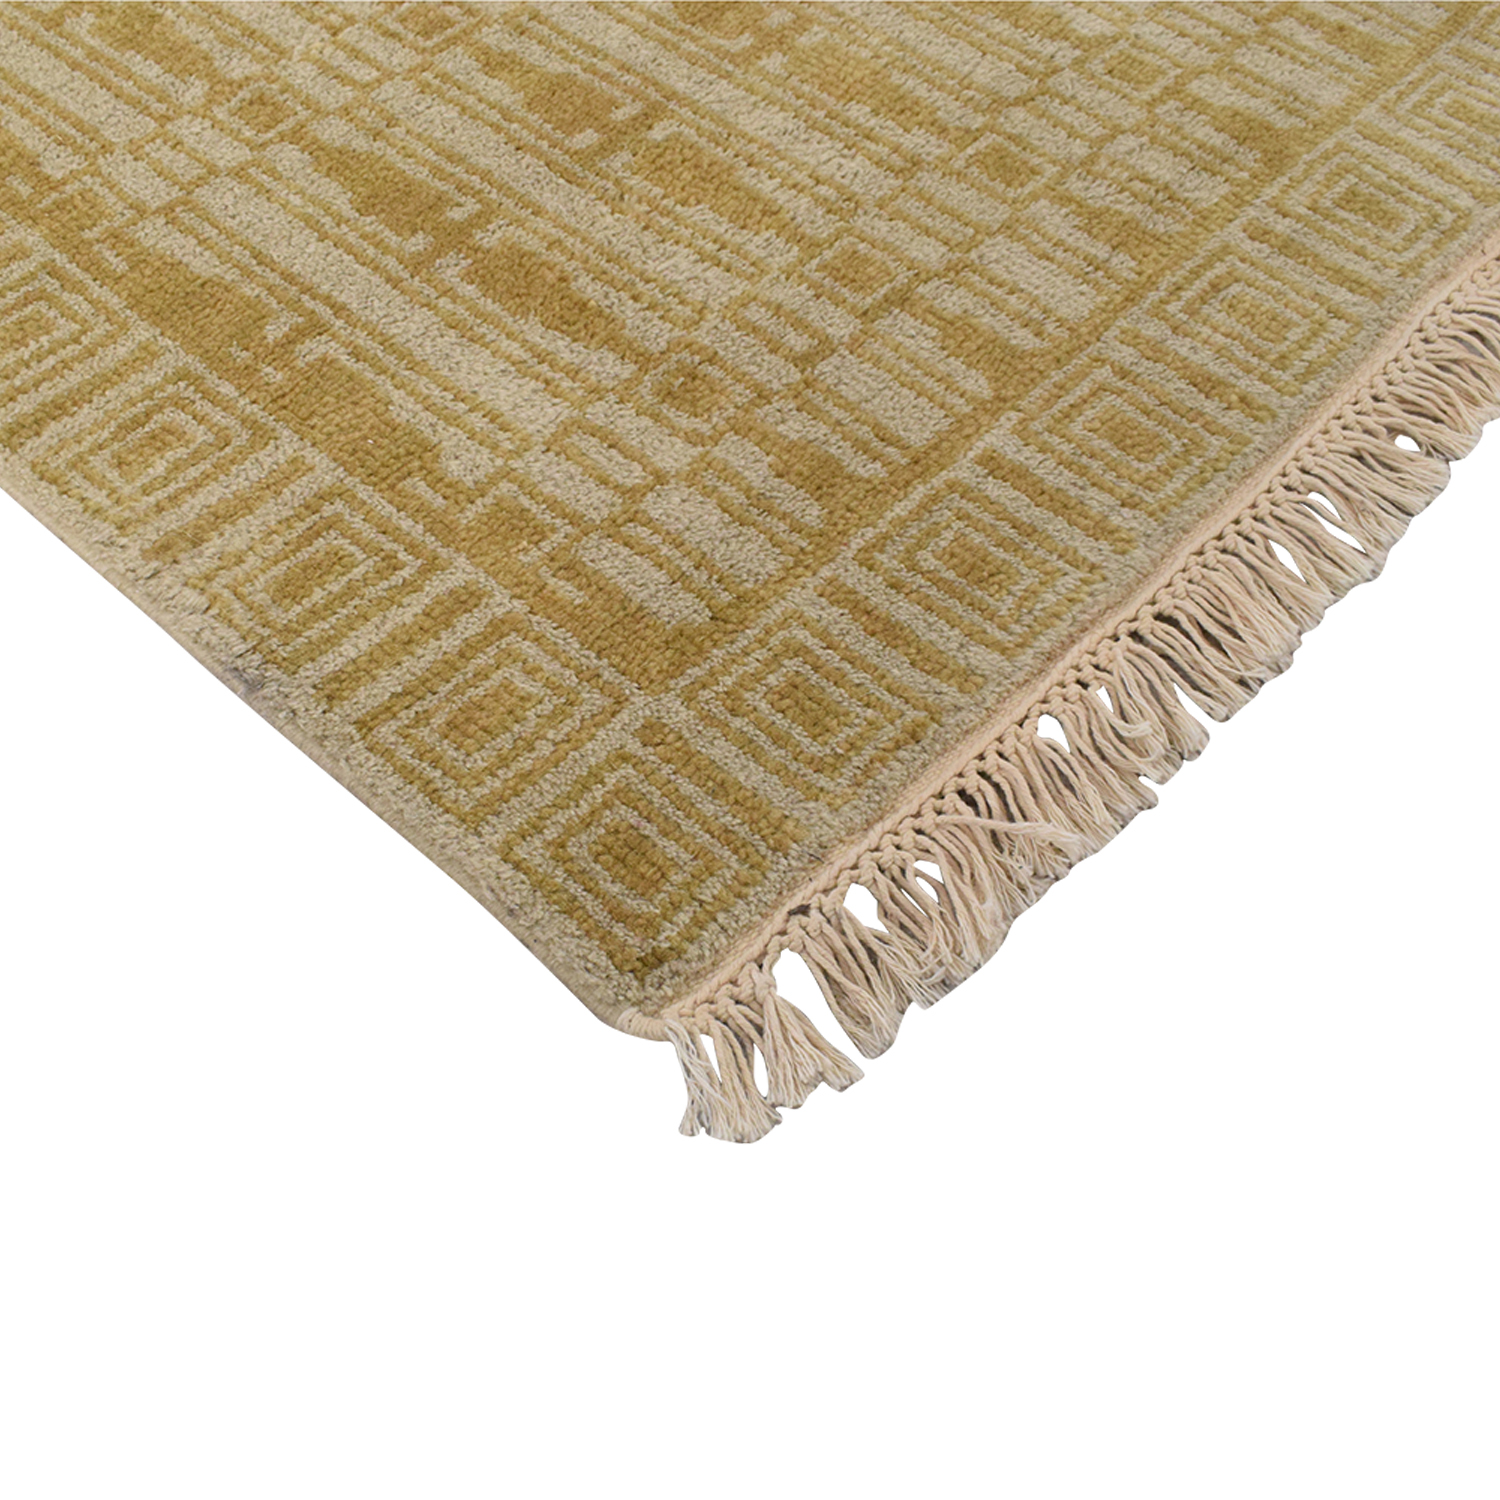 Room & Board Room & Board Tulum Hand Knotted Rug dimensions